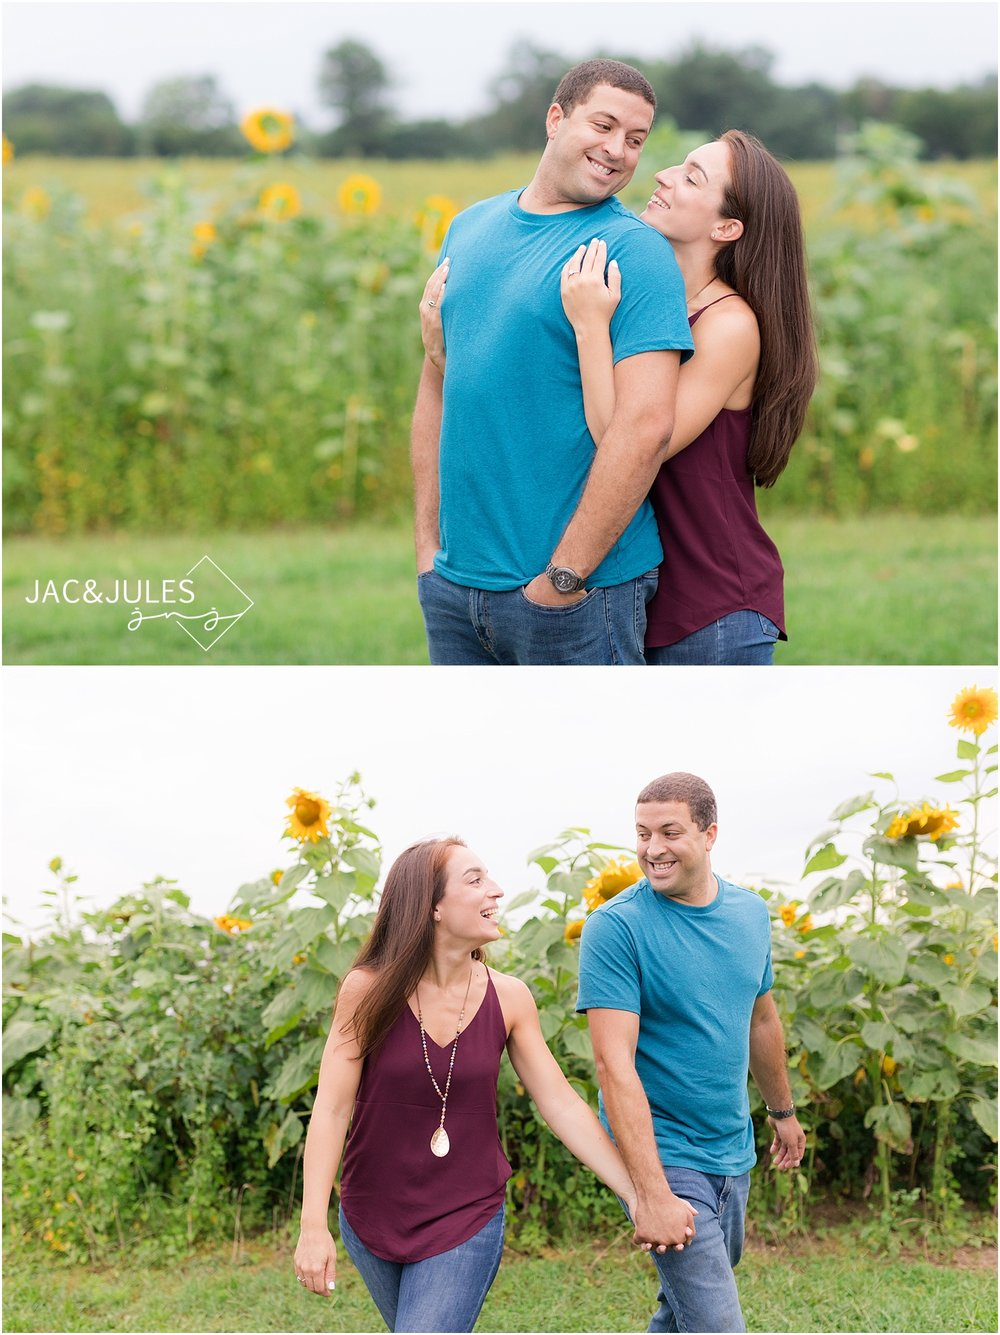 fun engagement photos in a sunflower field in nj